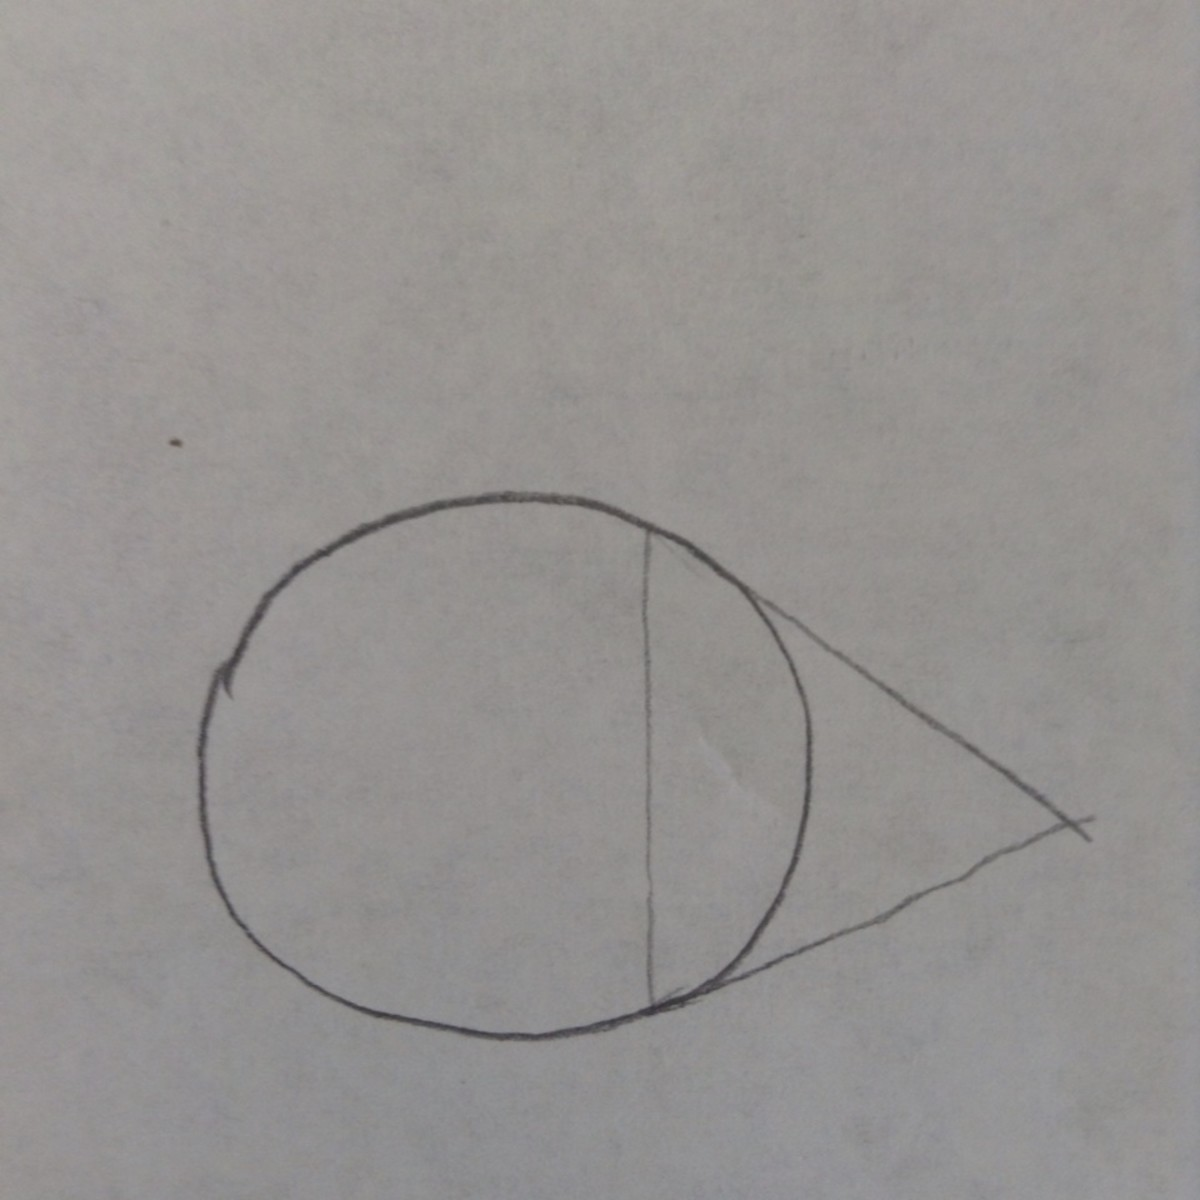 Step 2. Draw an overlapping triangle or acute angle.